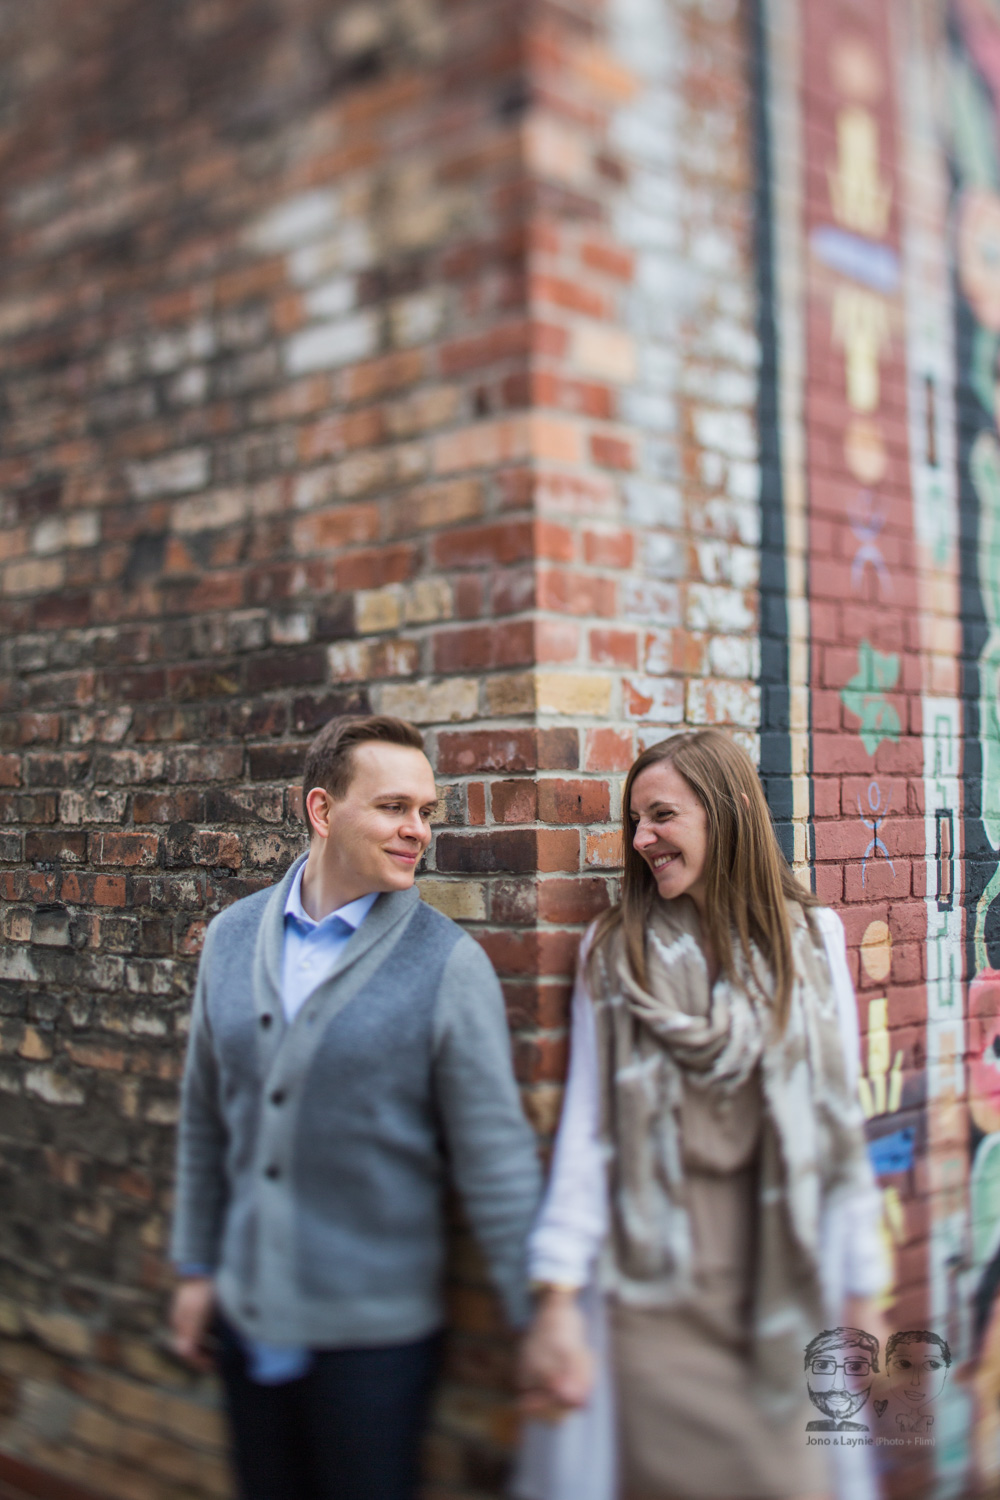 24Liberty Village Toronto- Lifestyle Photographers-Jono & Laynie Co.jpg